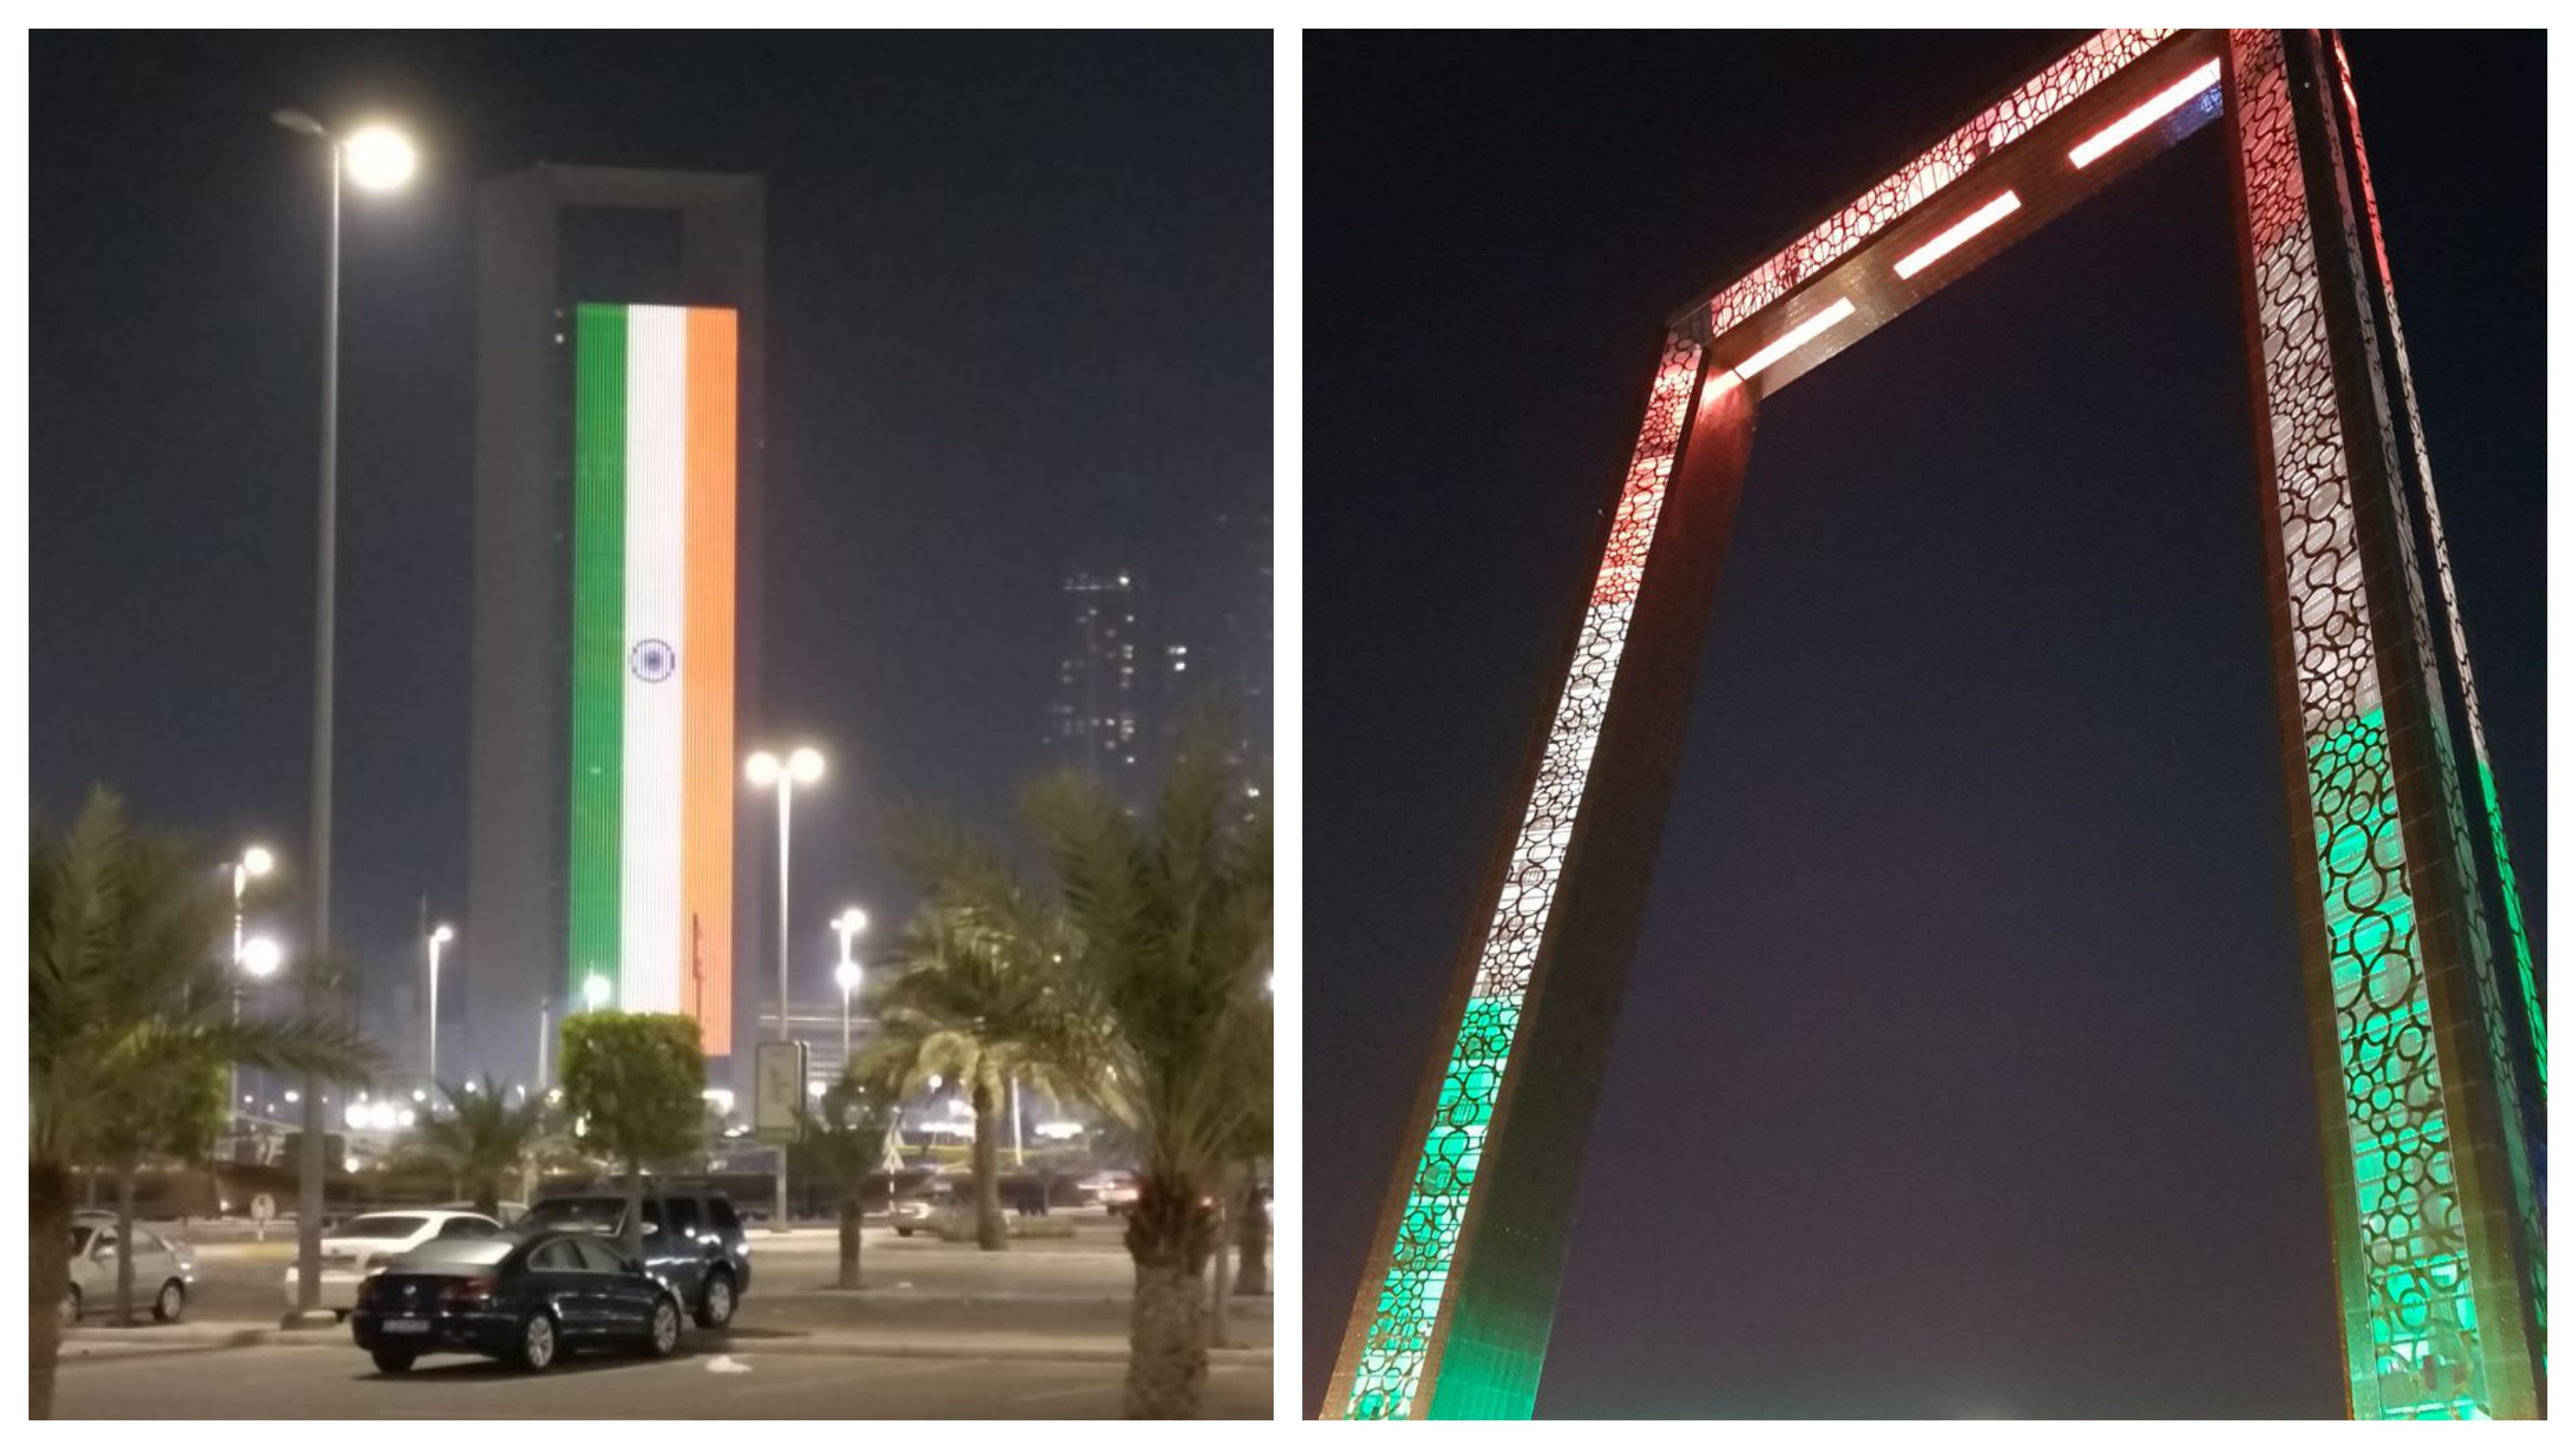 Indian tricolour lights up ADNOC Group headquarters, Abu Dhabi, the Dubai Frame and the Burj Khalifa in anticipation of the arrival of Prime Minister Narendra Modi.